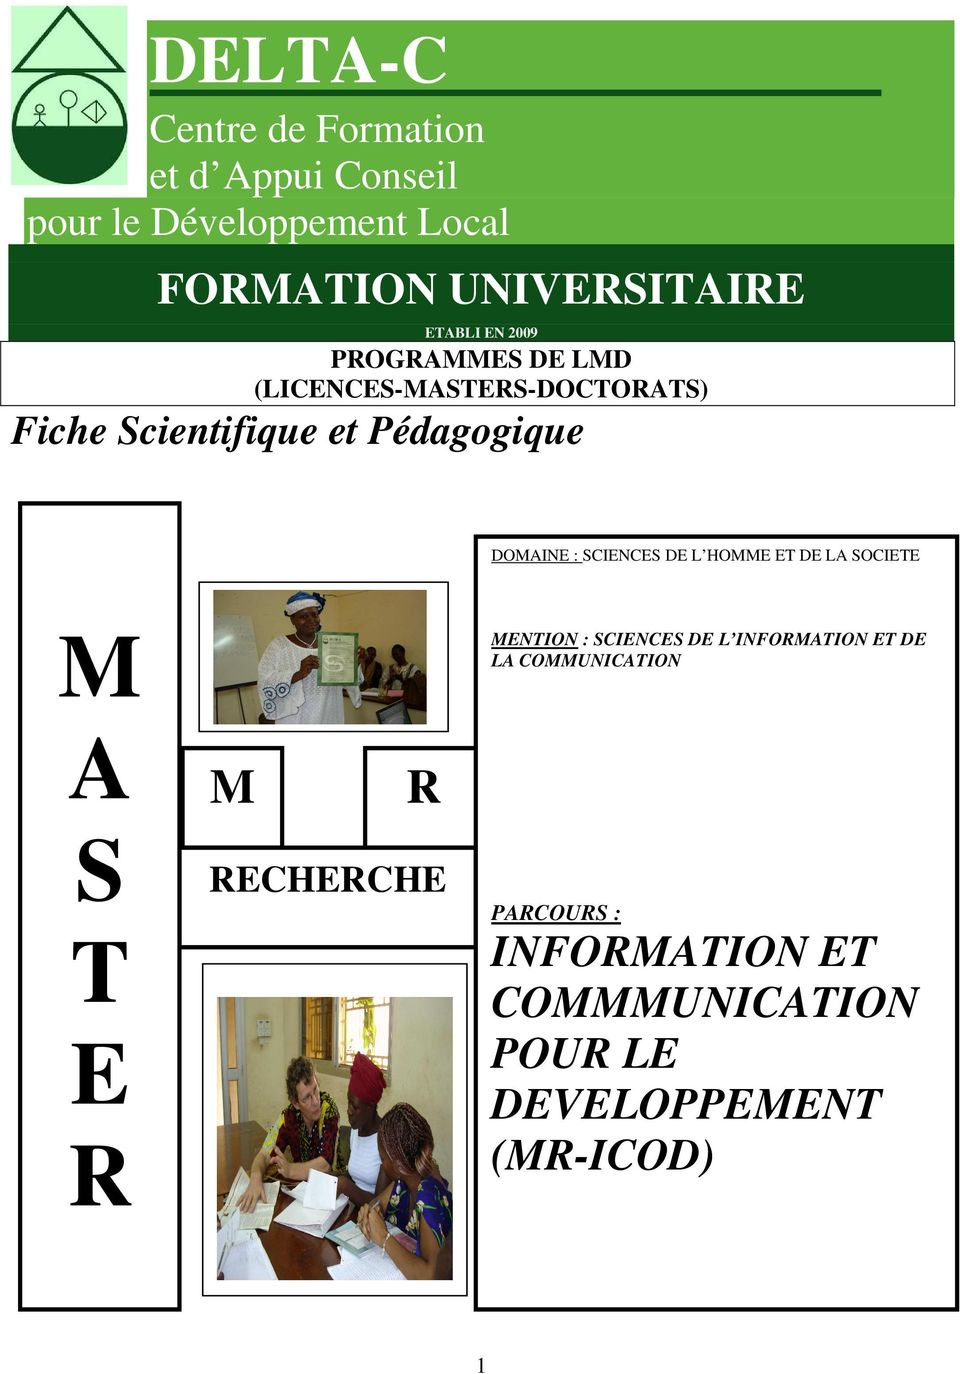 DOMAINE : SCIENCES DE L HOMME ET DE LA SOCIETE M MENTION : SCIENCES DE L INFORMATION ET DE LA